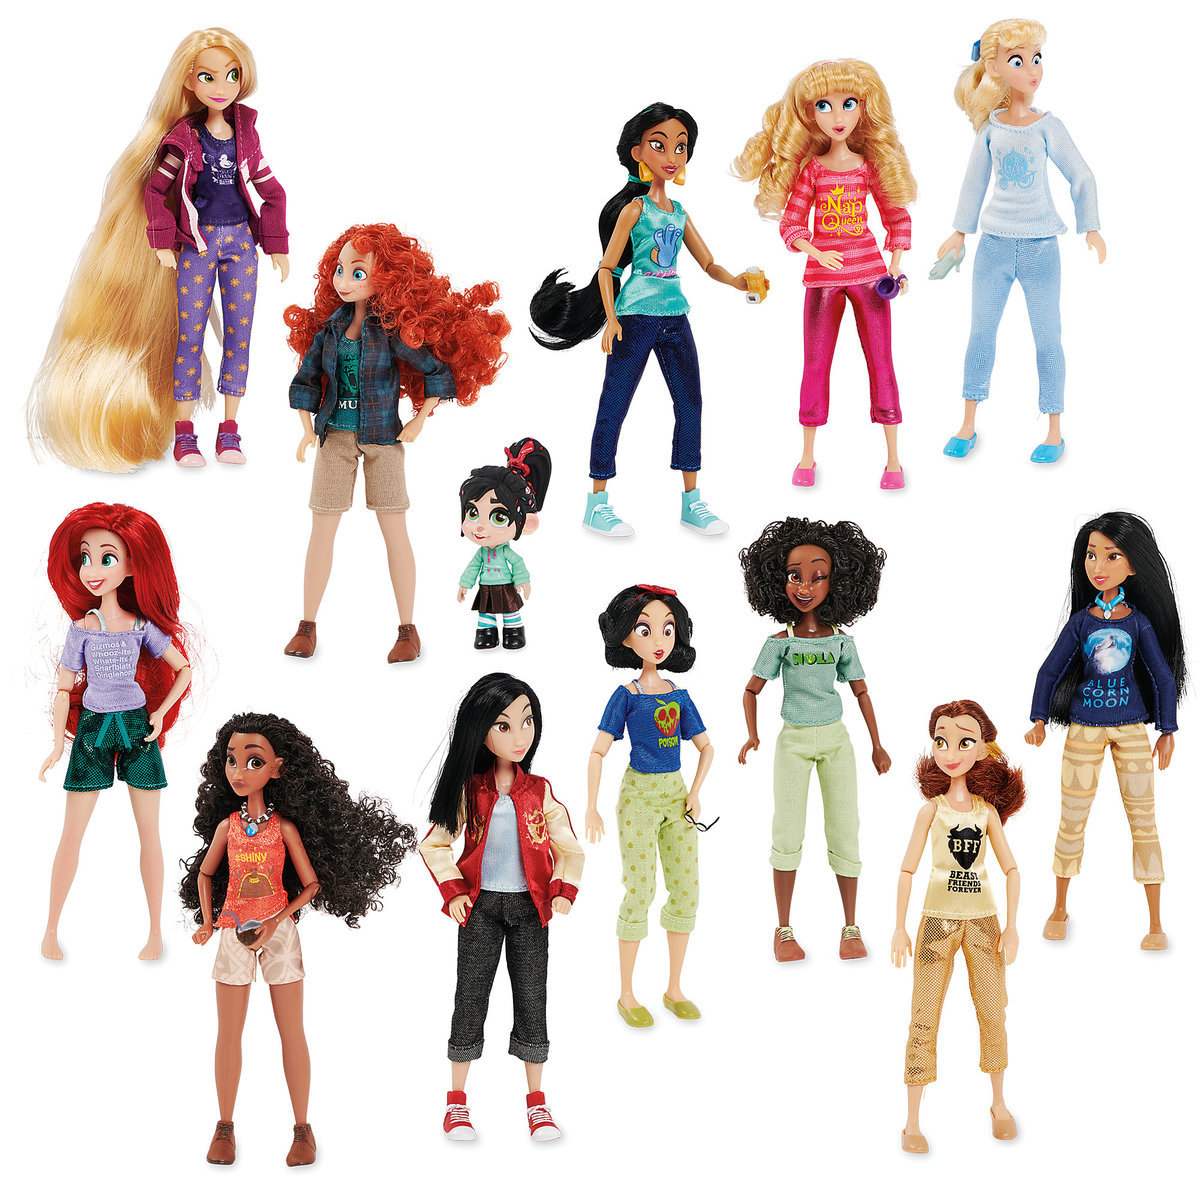 cd416df3ceb Product Image of Vanellope with Princesses from Ralph Breaks the Internet  Doll Set   1